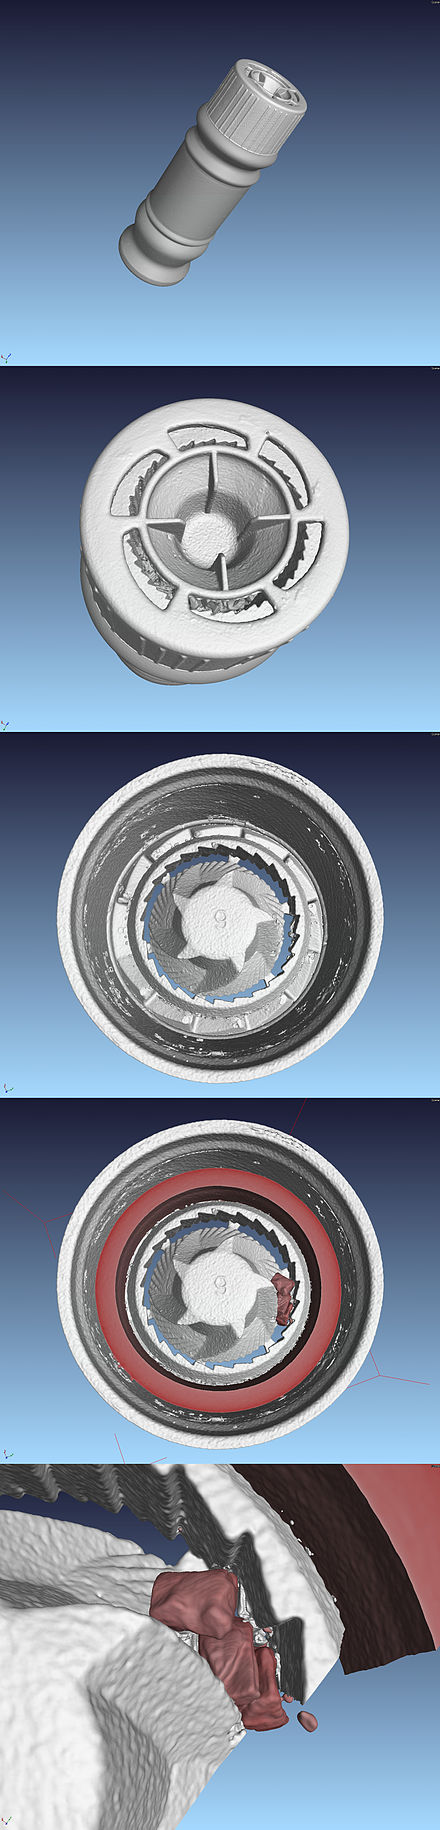 3D reconstruction of a disposable grinder with grinder made of plastic, from CT-data - Burr mill